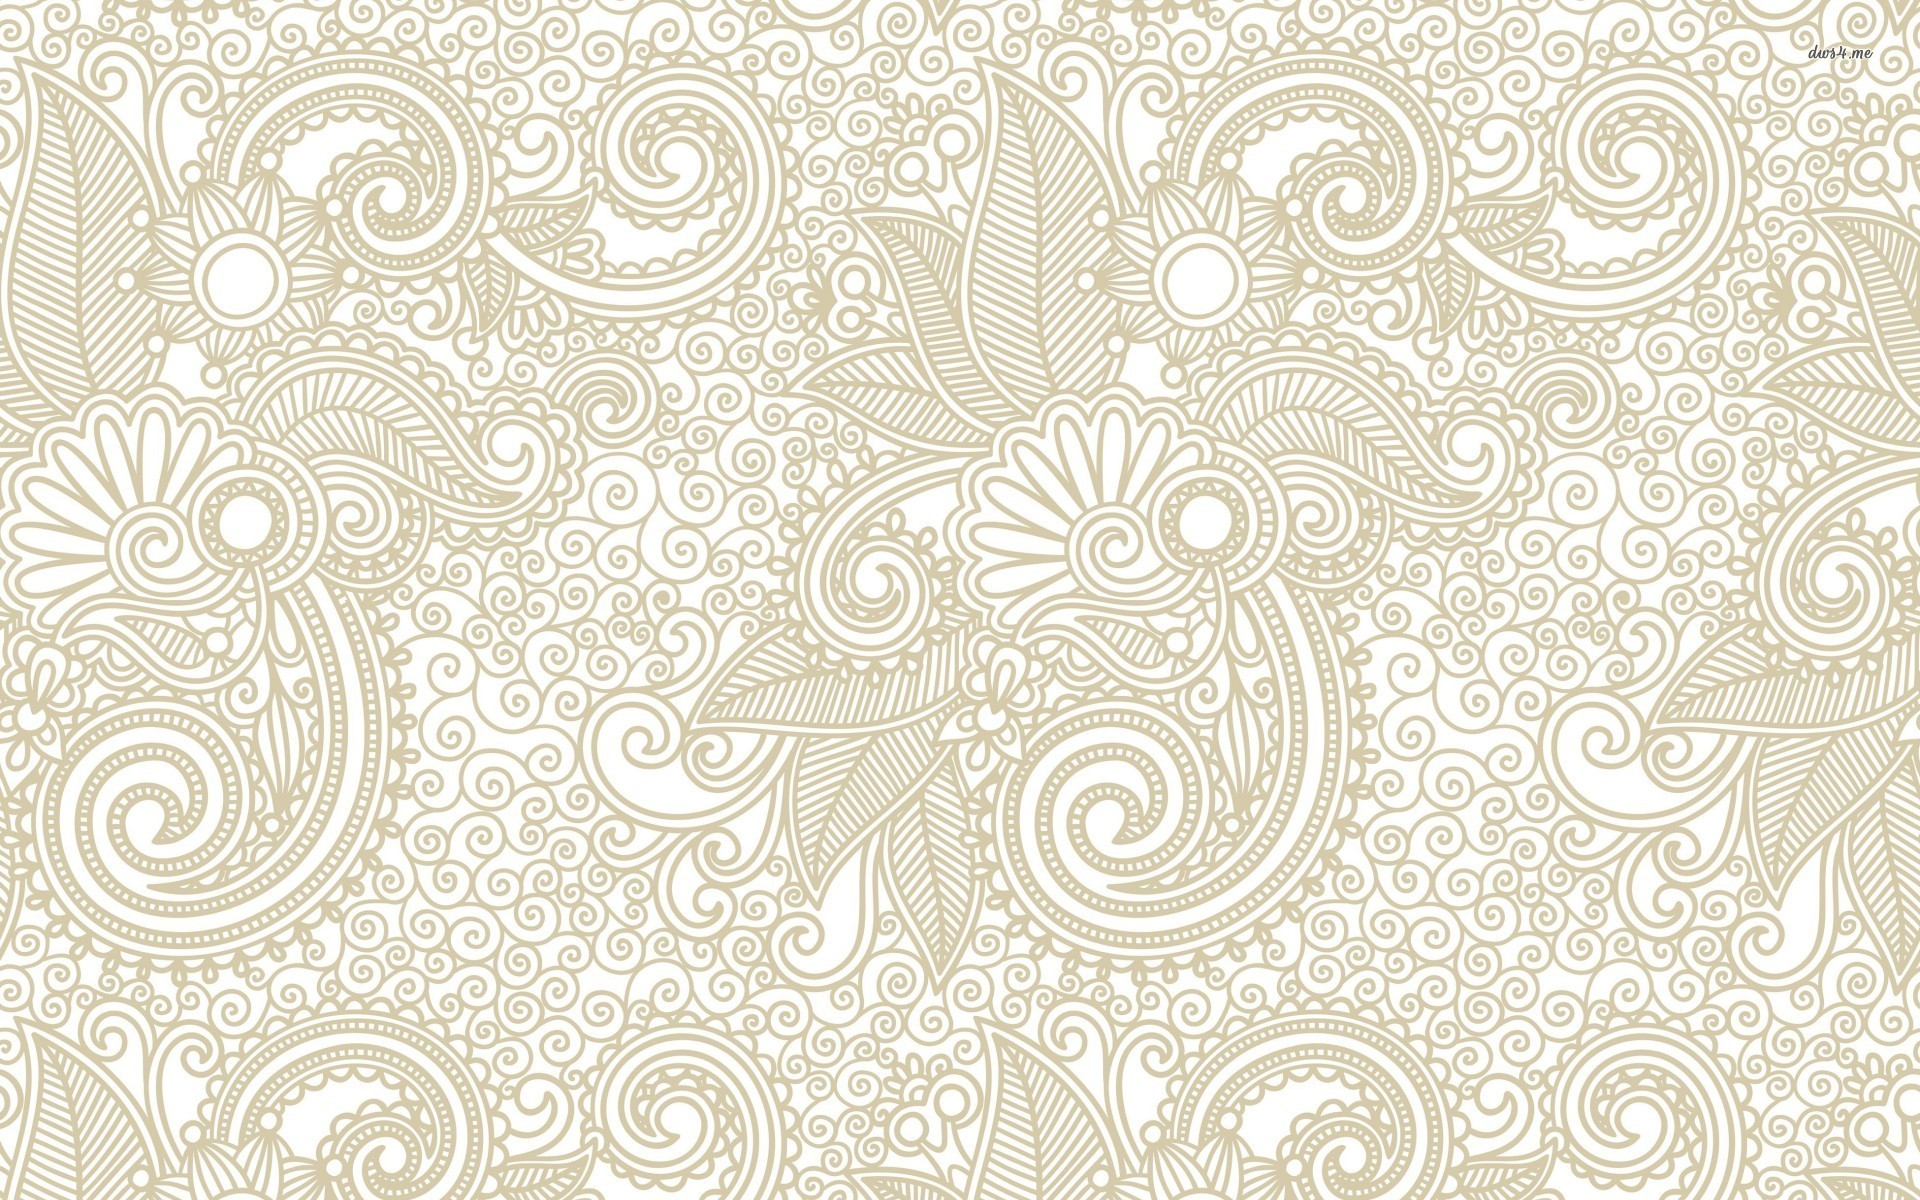 ... Paisley pattern wallpaper 1920x1200 ...